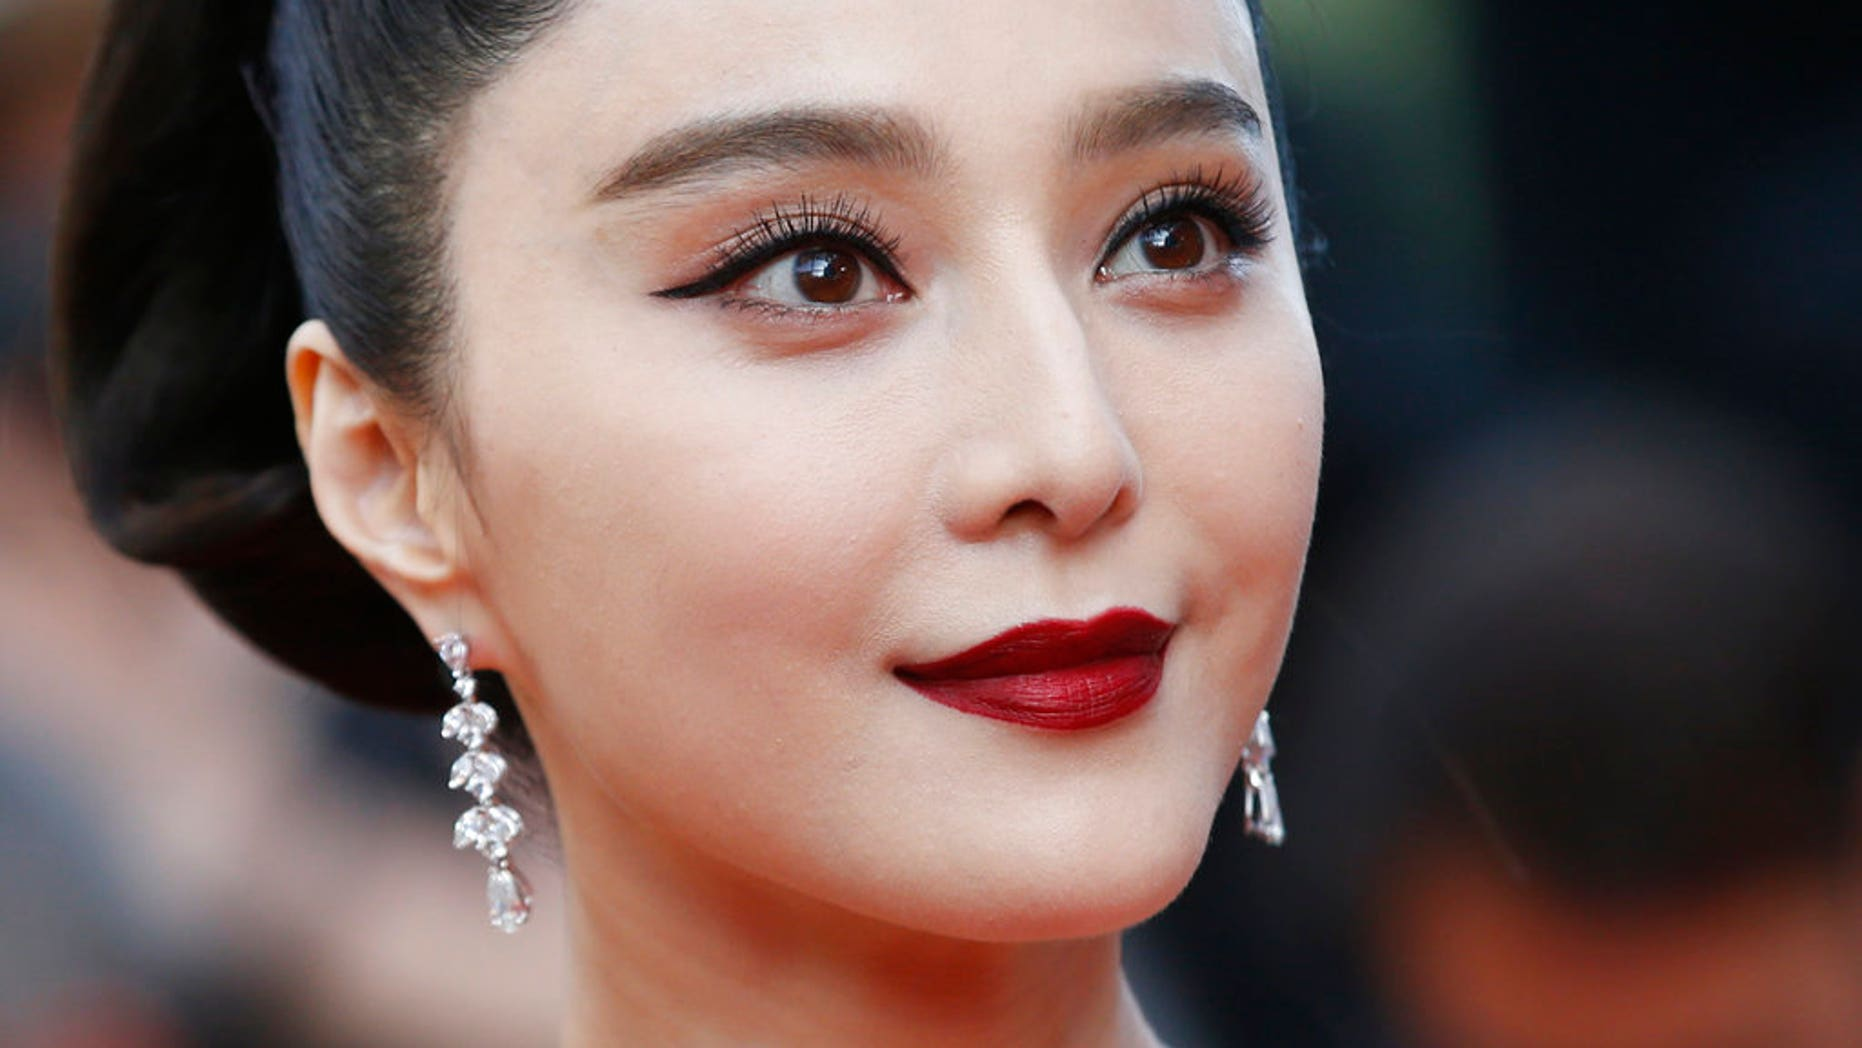 Chinese media said on Wednesday, Oct. 3, 2018, tax authorities ordered 'X-Men' star Fan Bingbing to pay taxes and fines worth hundreds of millions of yuan but would spare her from criminal prosecution.